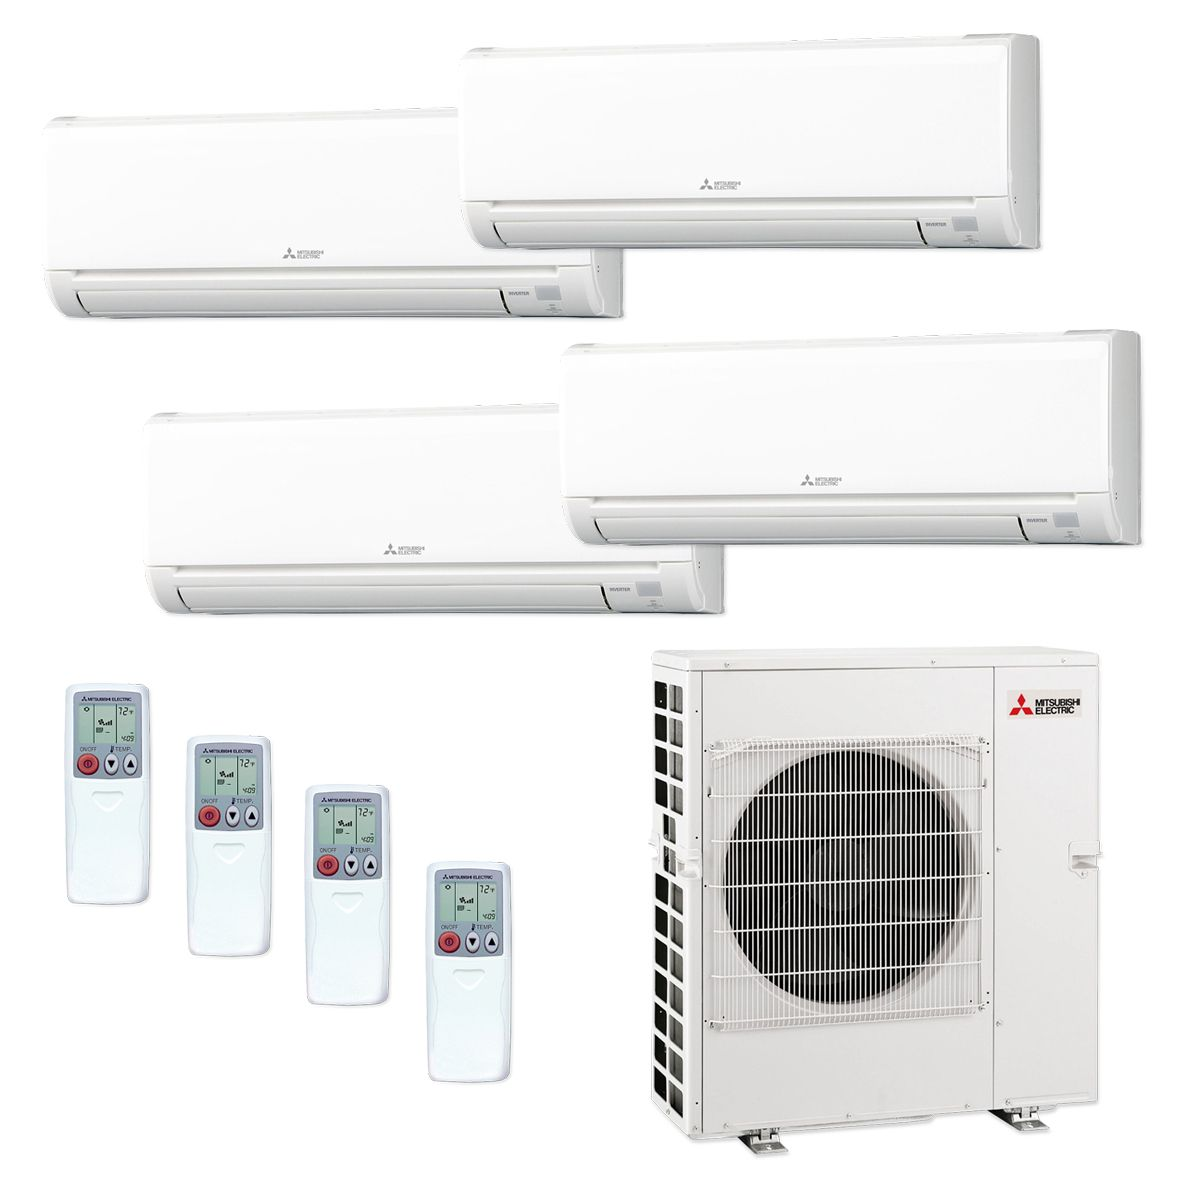 Mitsubishi Mxz5c42na 4ws 33 42 000 Btu Mr Slim Quad Zone Ductless Mini Split Air Conditioner Heat Pump 208 230v 6 12 18